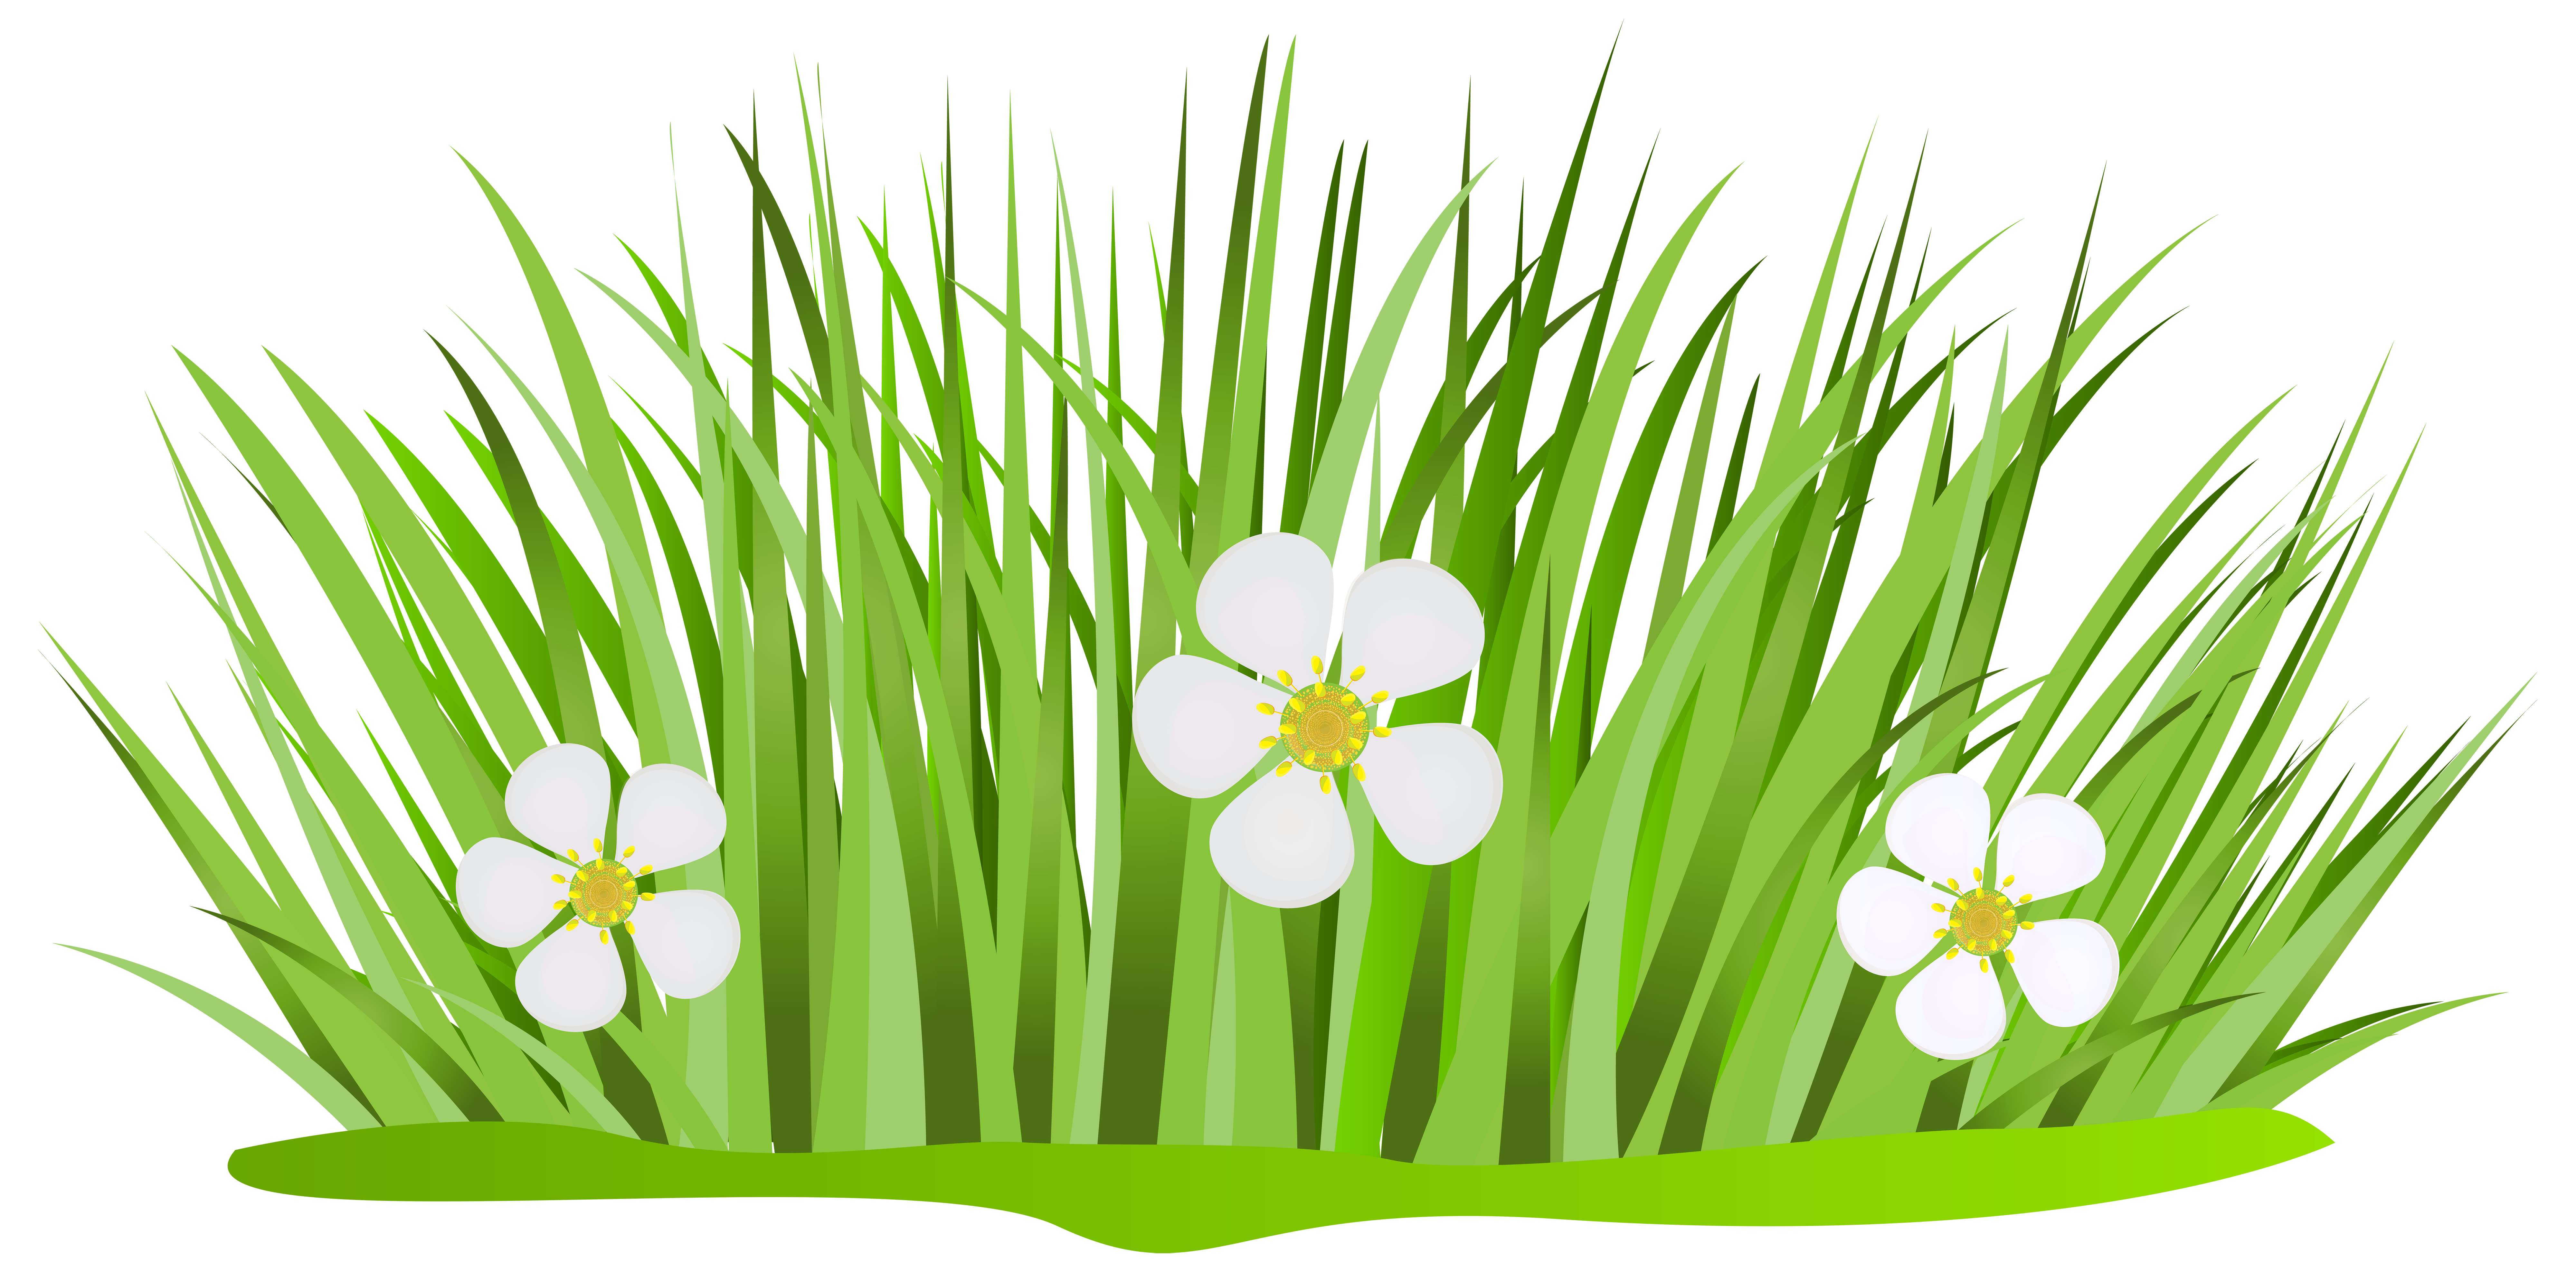 Grass png cartoon. Images in collection page